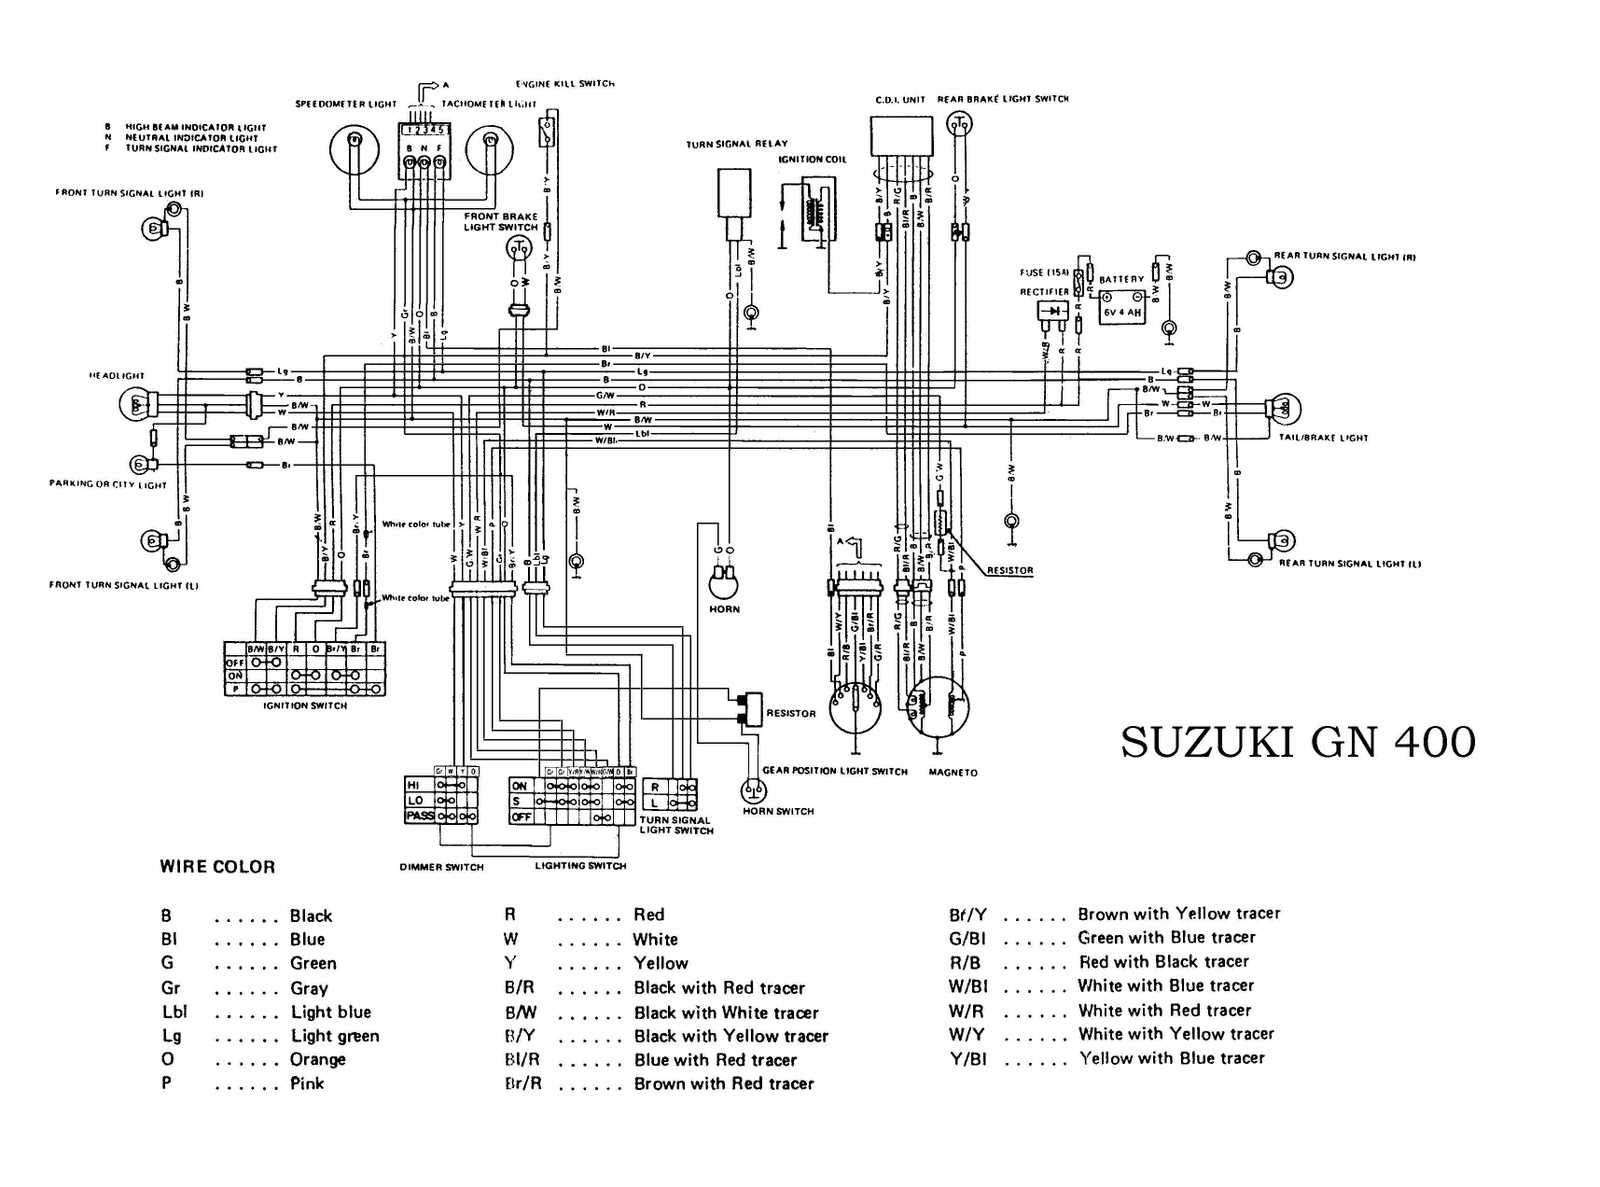 Suzuki+GN400+Electrical+Wiring+Diagram e67 wiring diagram smart car diagrams \u2022 wiring diagrams j squared co daf lf fuse box diagram at gsmportal.co